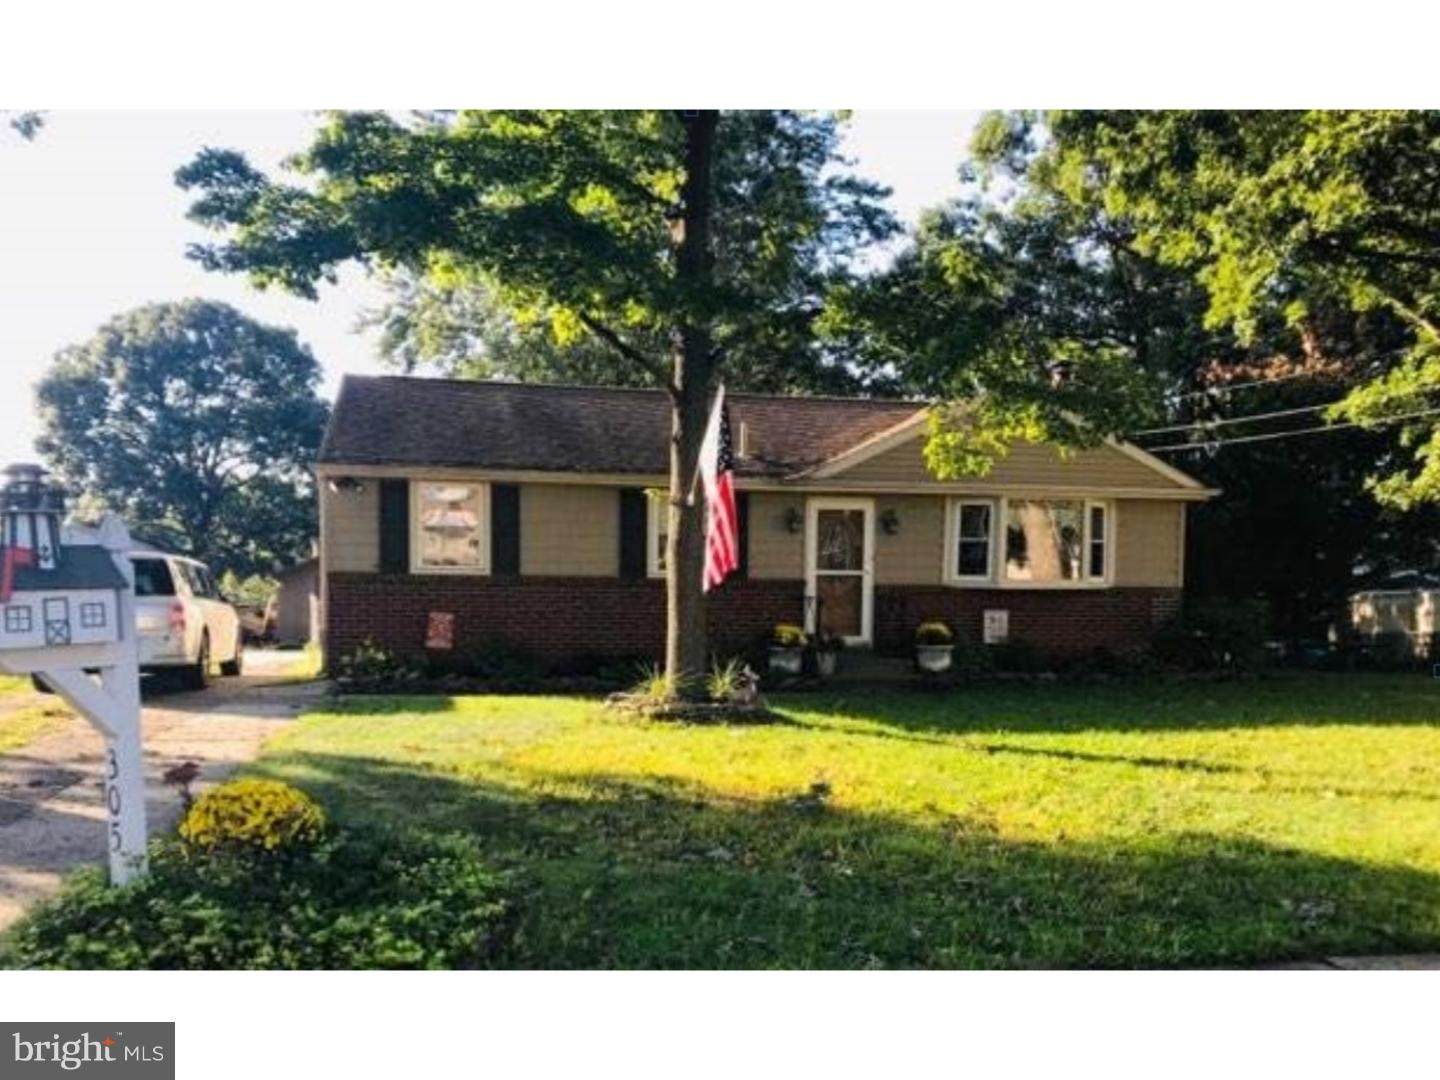 Single Family Home for Sale at 305 N 3RD Street National Park, New Jersey 08063 United States